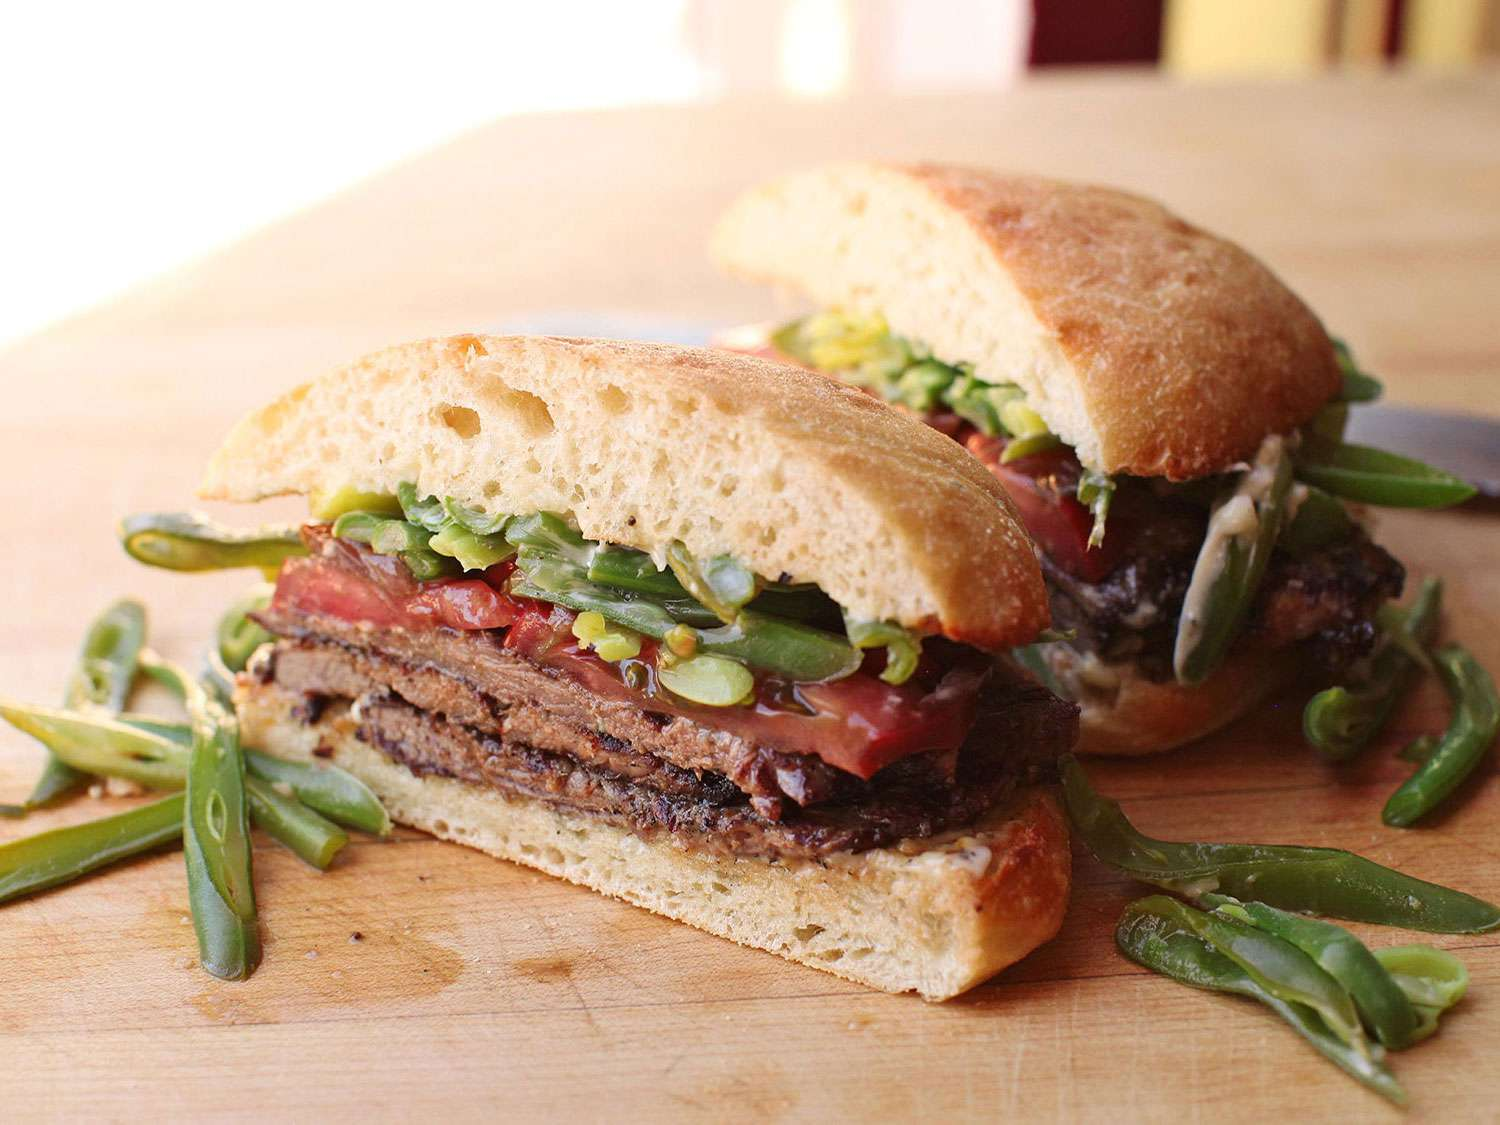 Chacareros chilenos (steak sandwiches topped with tomato and cooked green beans)